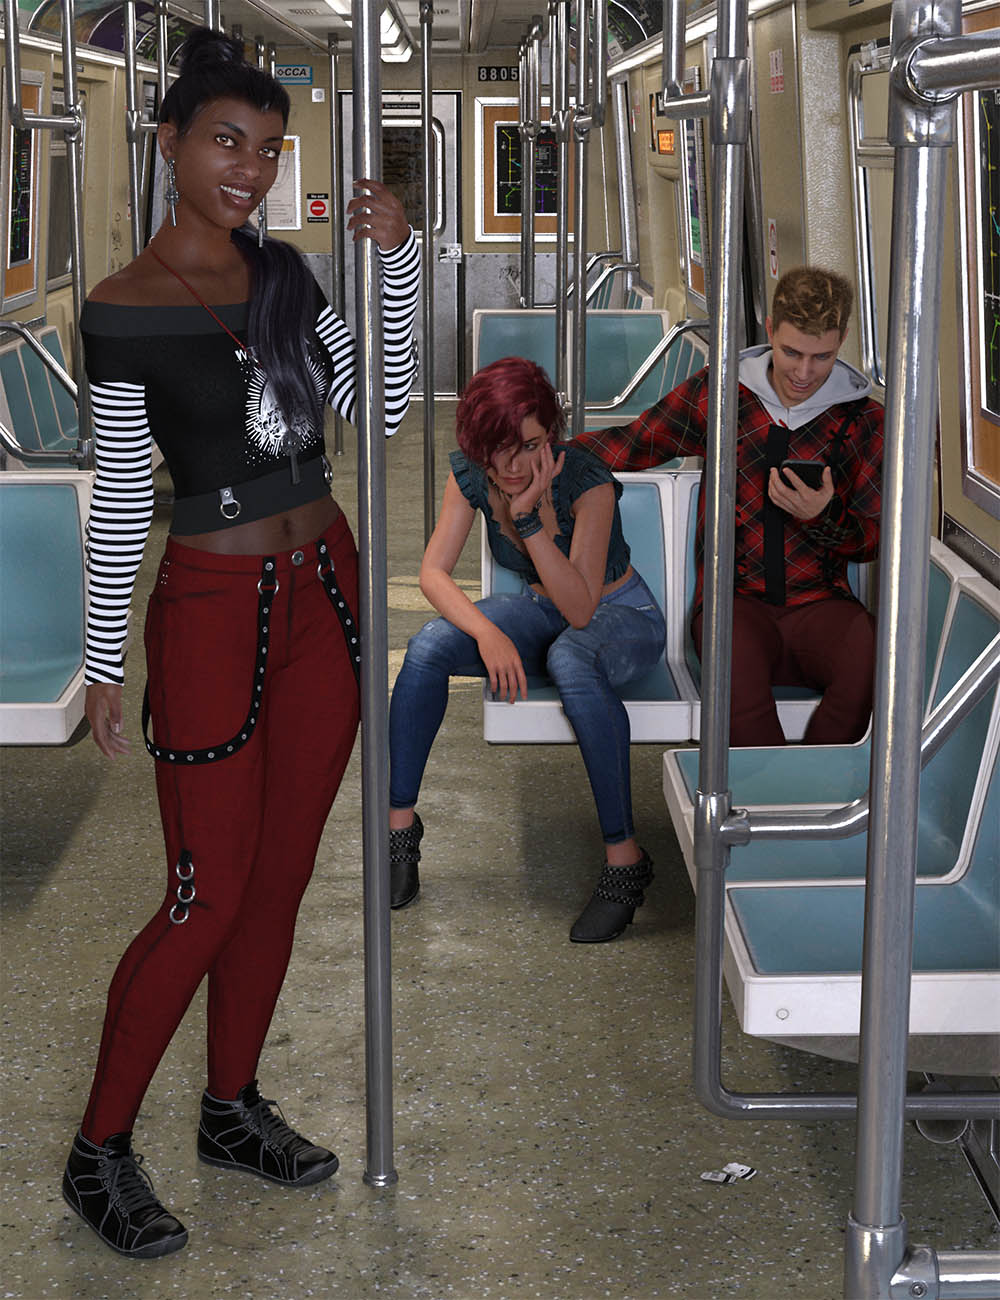 CDI Subway Poses for Genesis 8.1 by: Capsces Digital Ink, 3D Models by Daz 3D